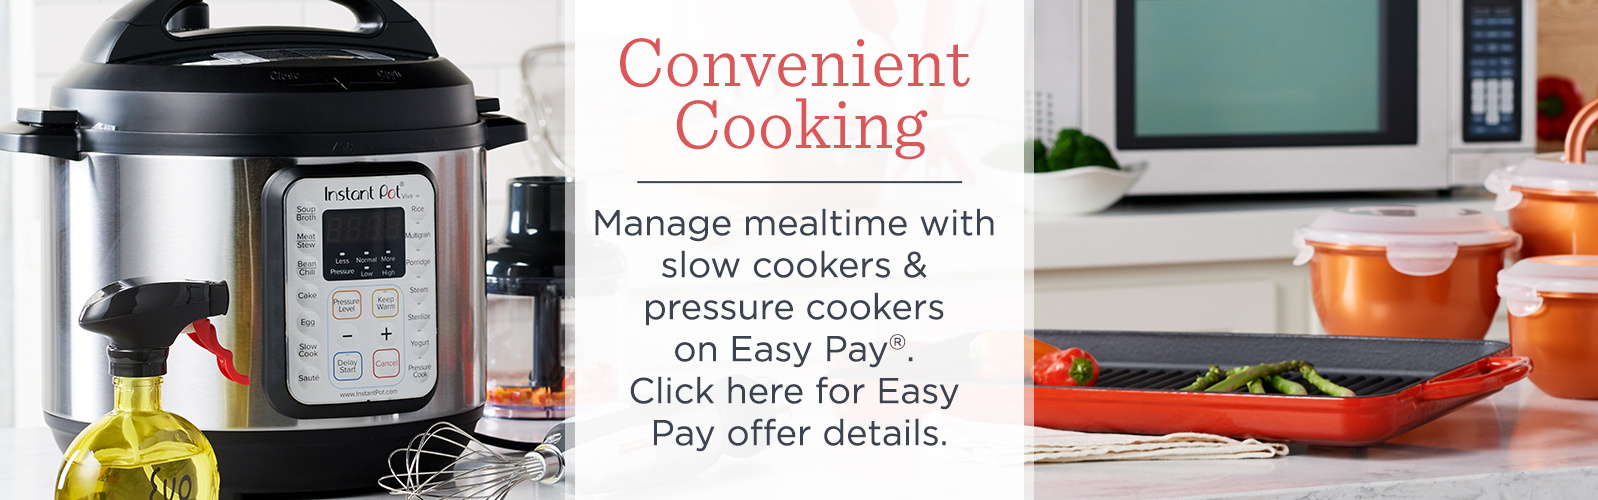 Convenient Cooking  Manage mealtime with slow cookers & pressure cookers on Easy Pay®.  Click here for Easy Pay offer details.